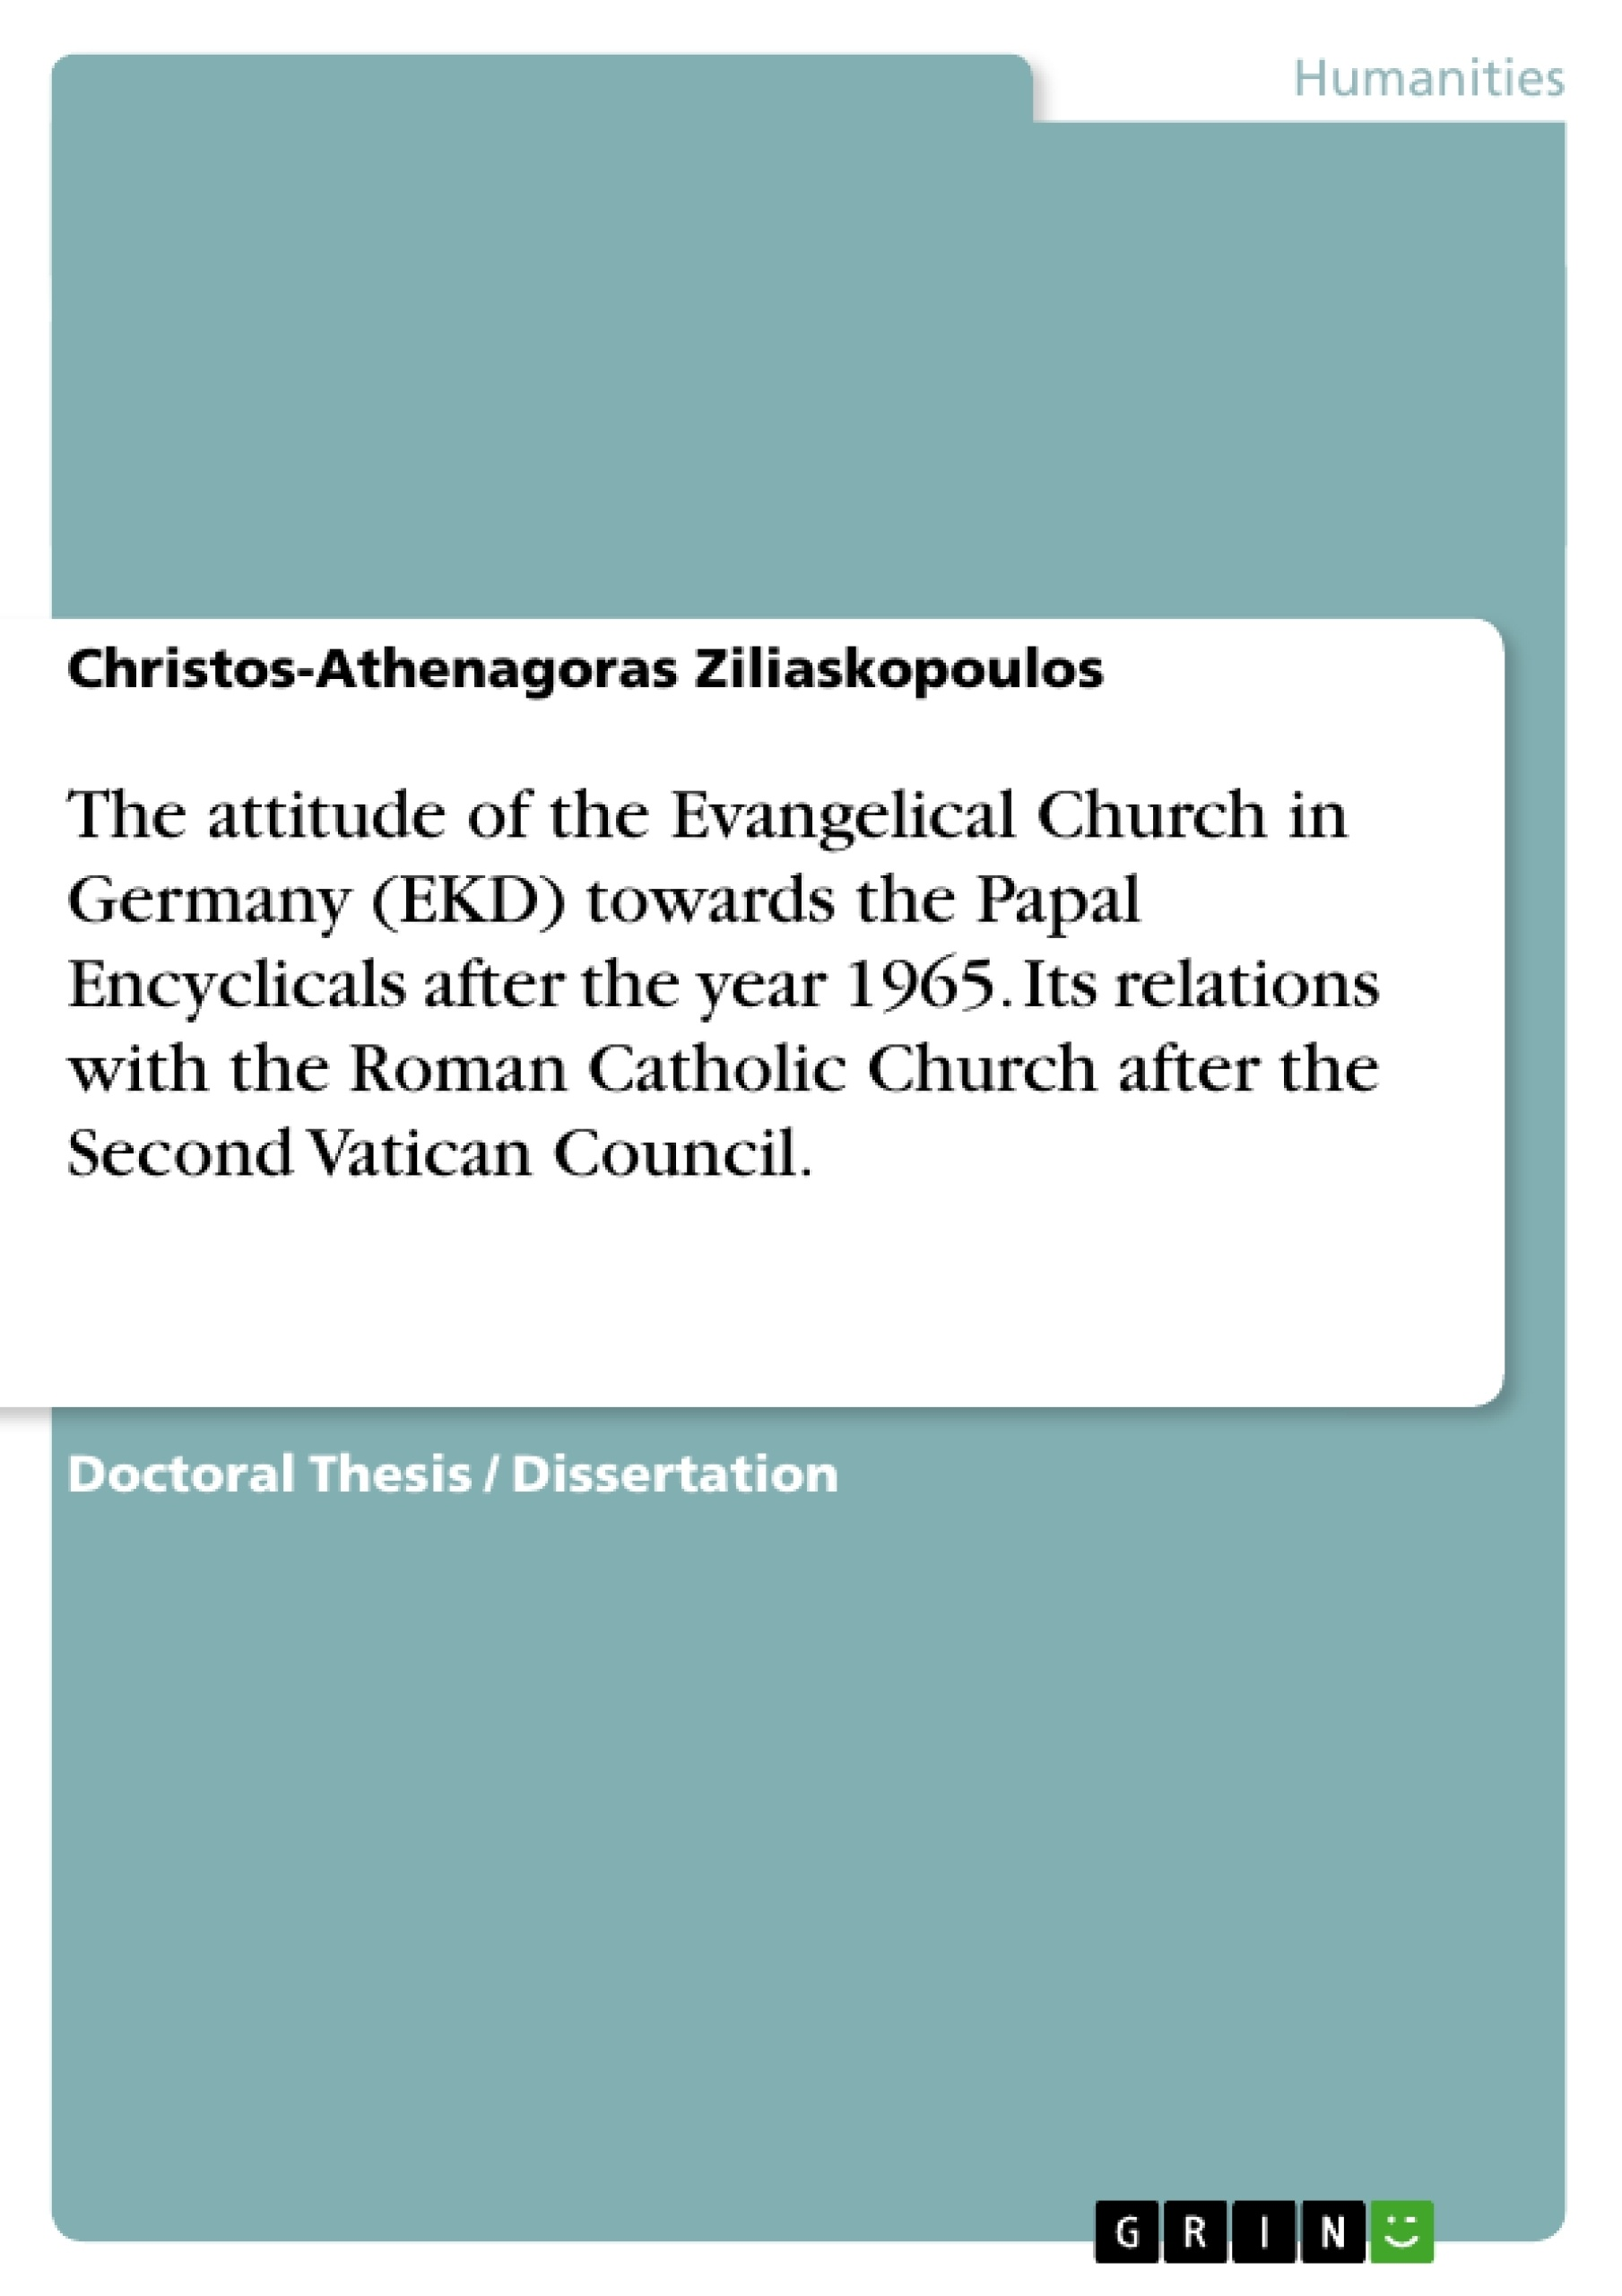 GRIN - The attitude of the Evangelical Church in Germany (EKD) towards the  Papal Encyclicals after the year 1965  Its relations with the Roman